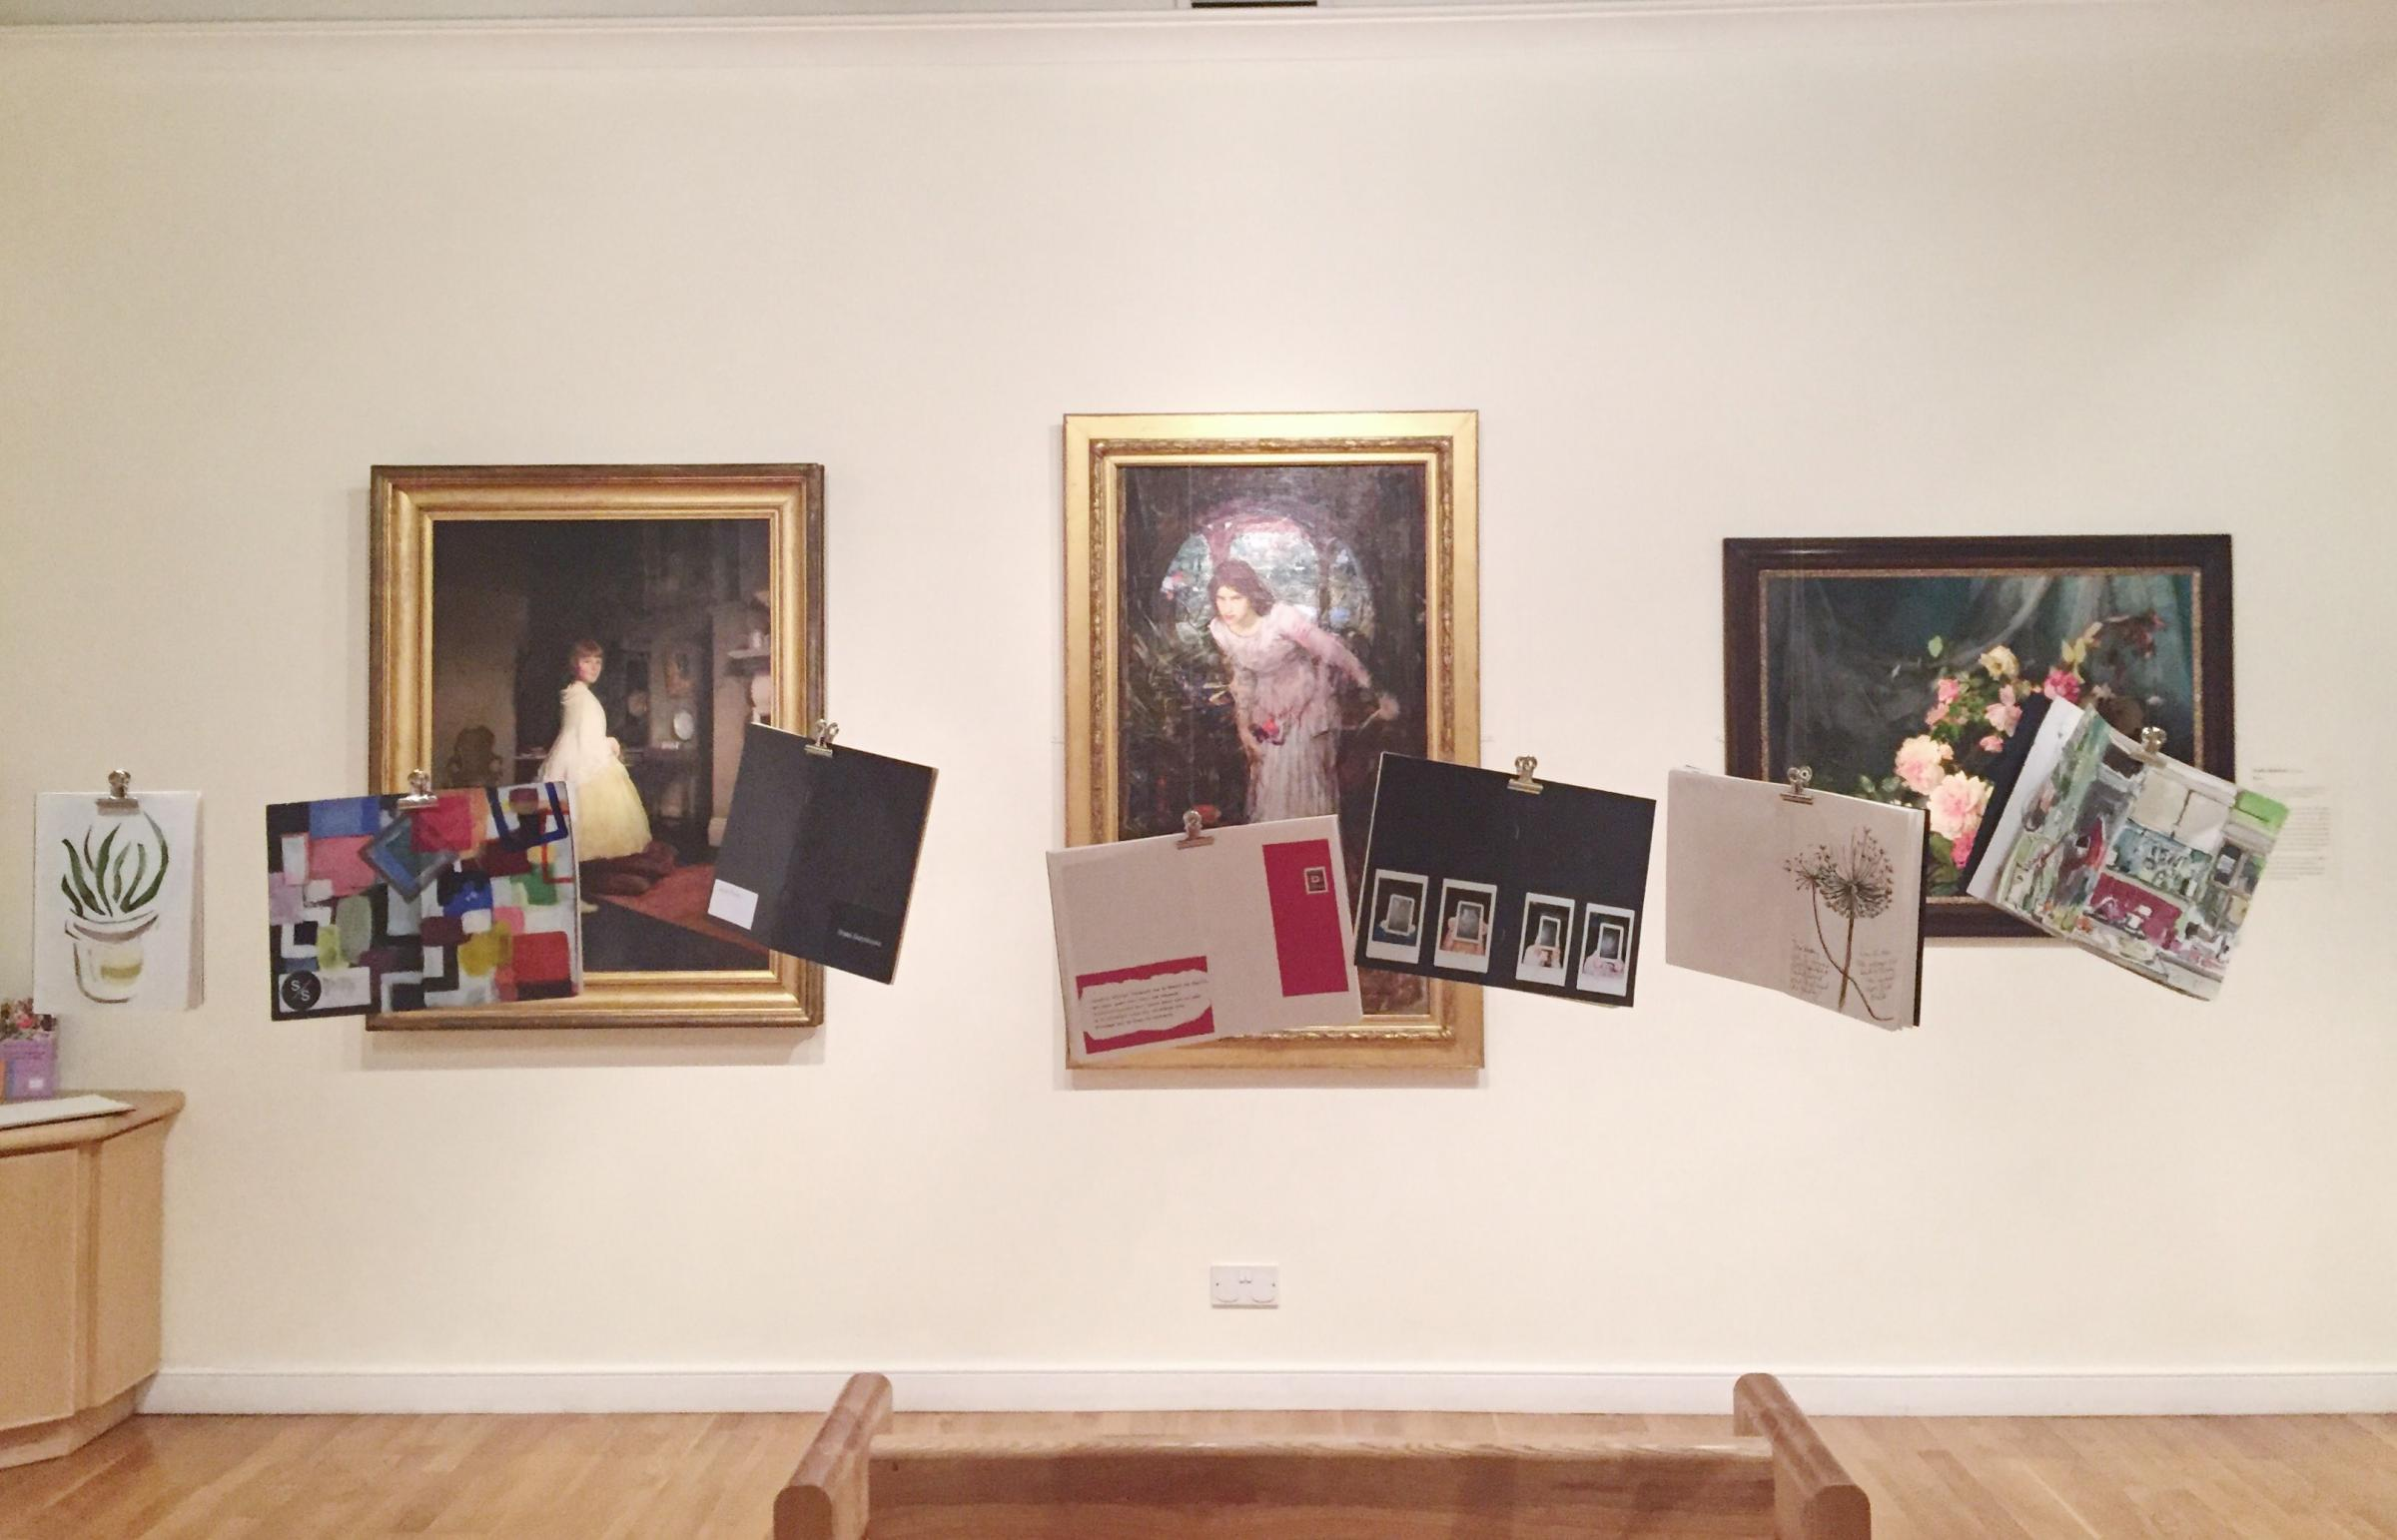 Shallal Sketchbooks exhibition at Falmouth Art Gallery